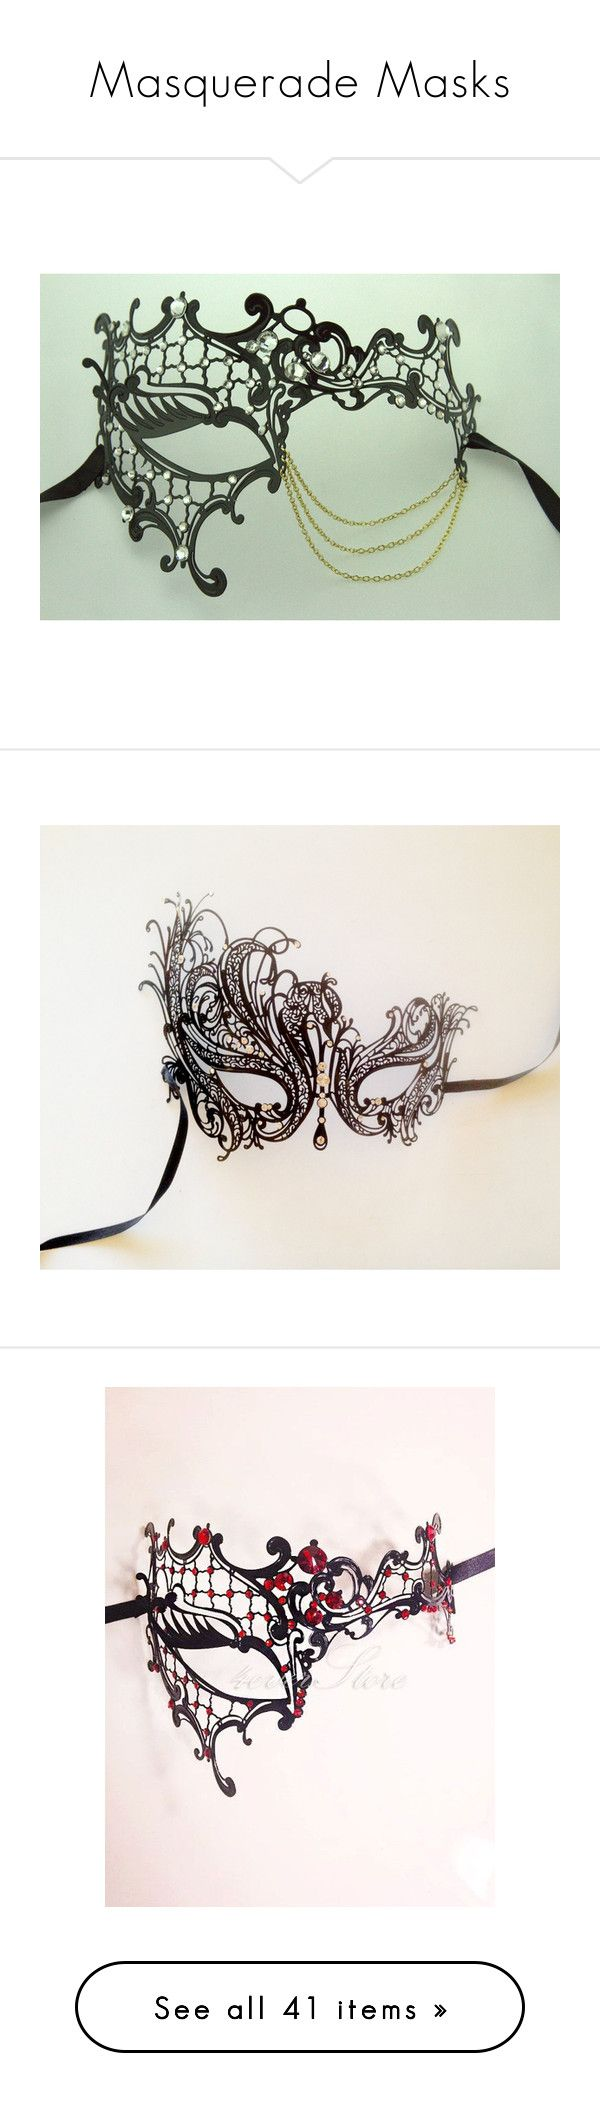 """Masquerade Masks"" by gingerstark ❤ liked on Polyvore featuring masks, masquerade, costumes, masquerade costume, elegant halloween costumes, elegant costumes, masquerade halloween costume, mask, accessories and masquerade mask"